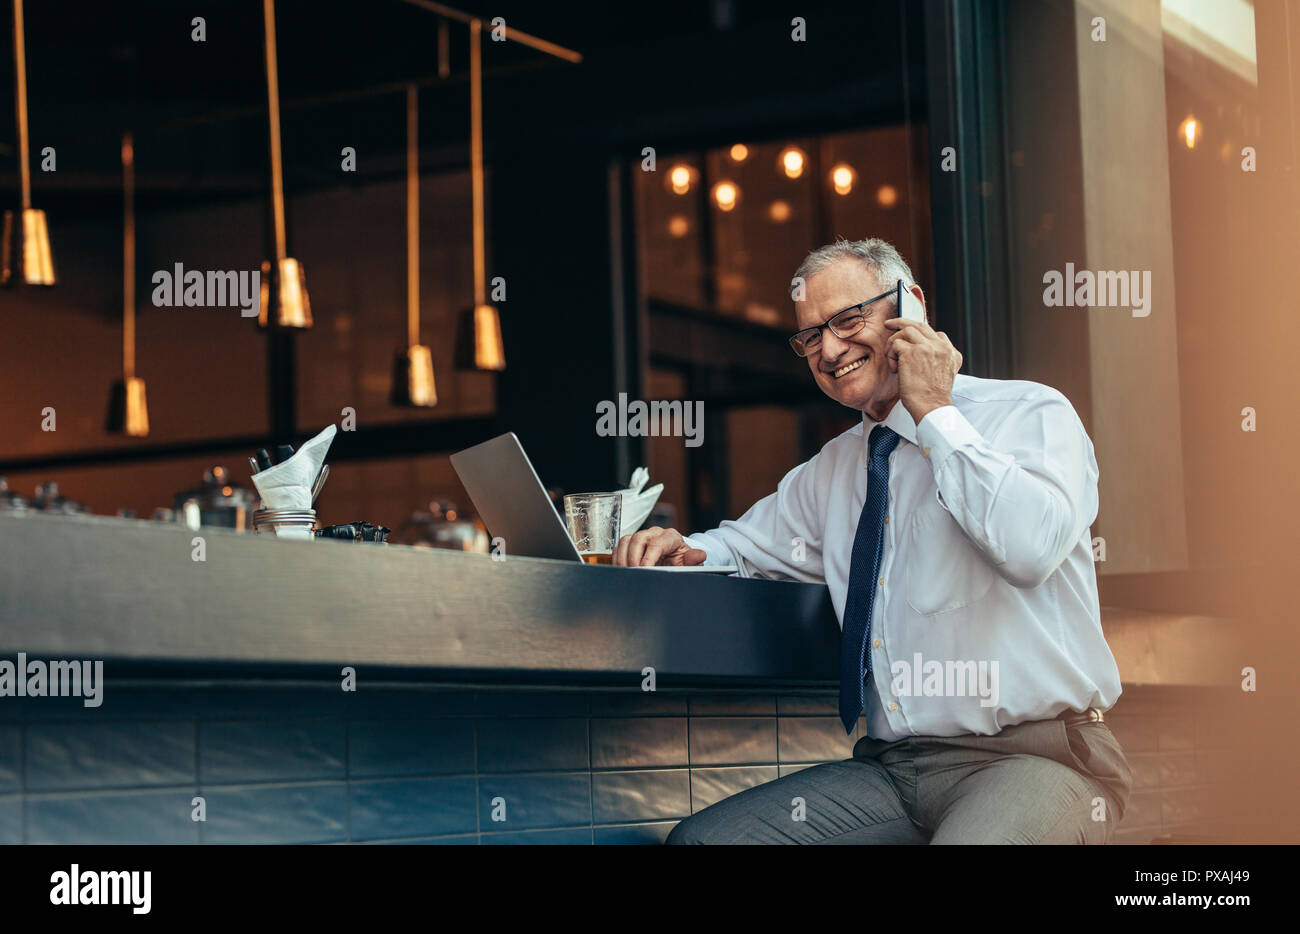 Smiling senior man in formal wear sitting at bar counter with laptop talking on cell phone. Happy mature entrepreneur making a phone call from bar cou - Stock Image